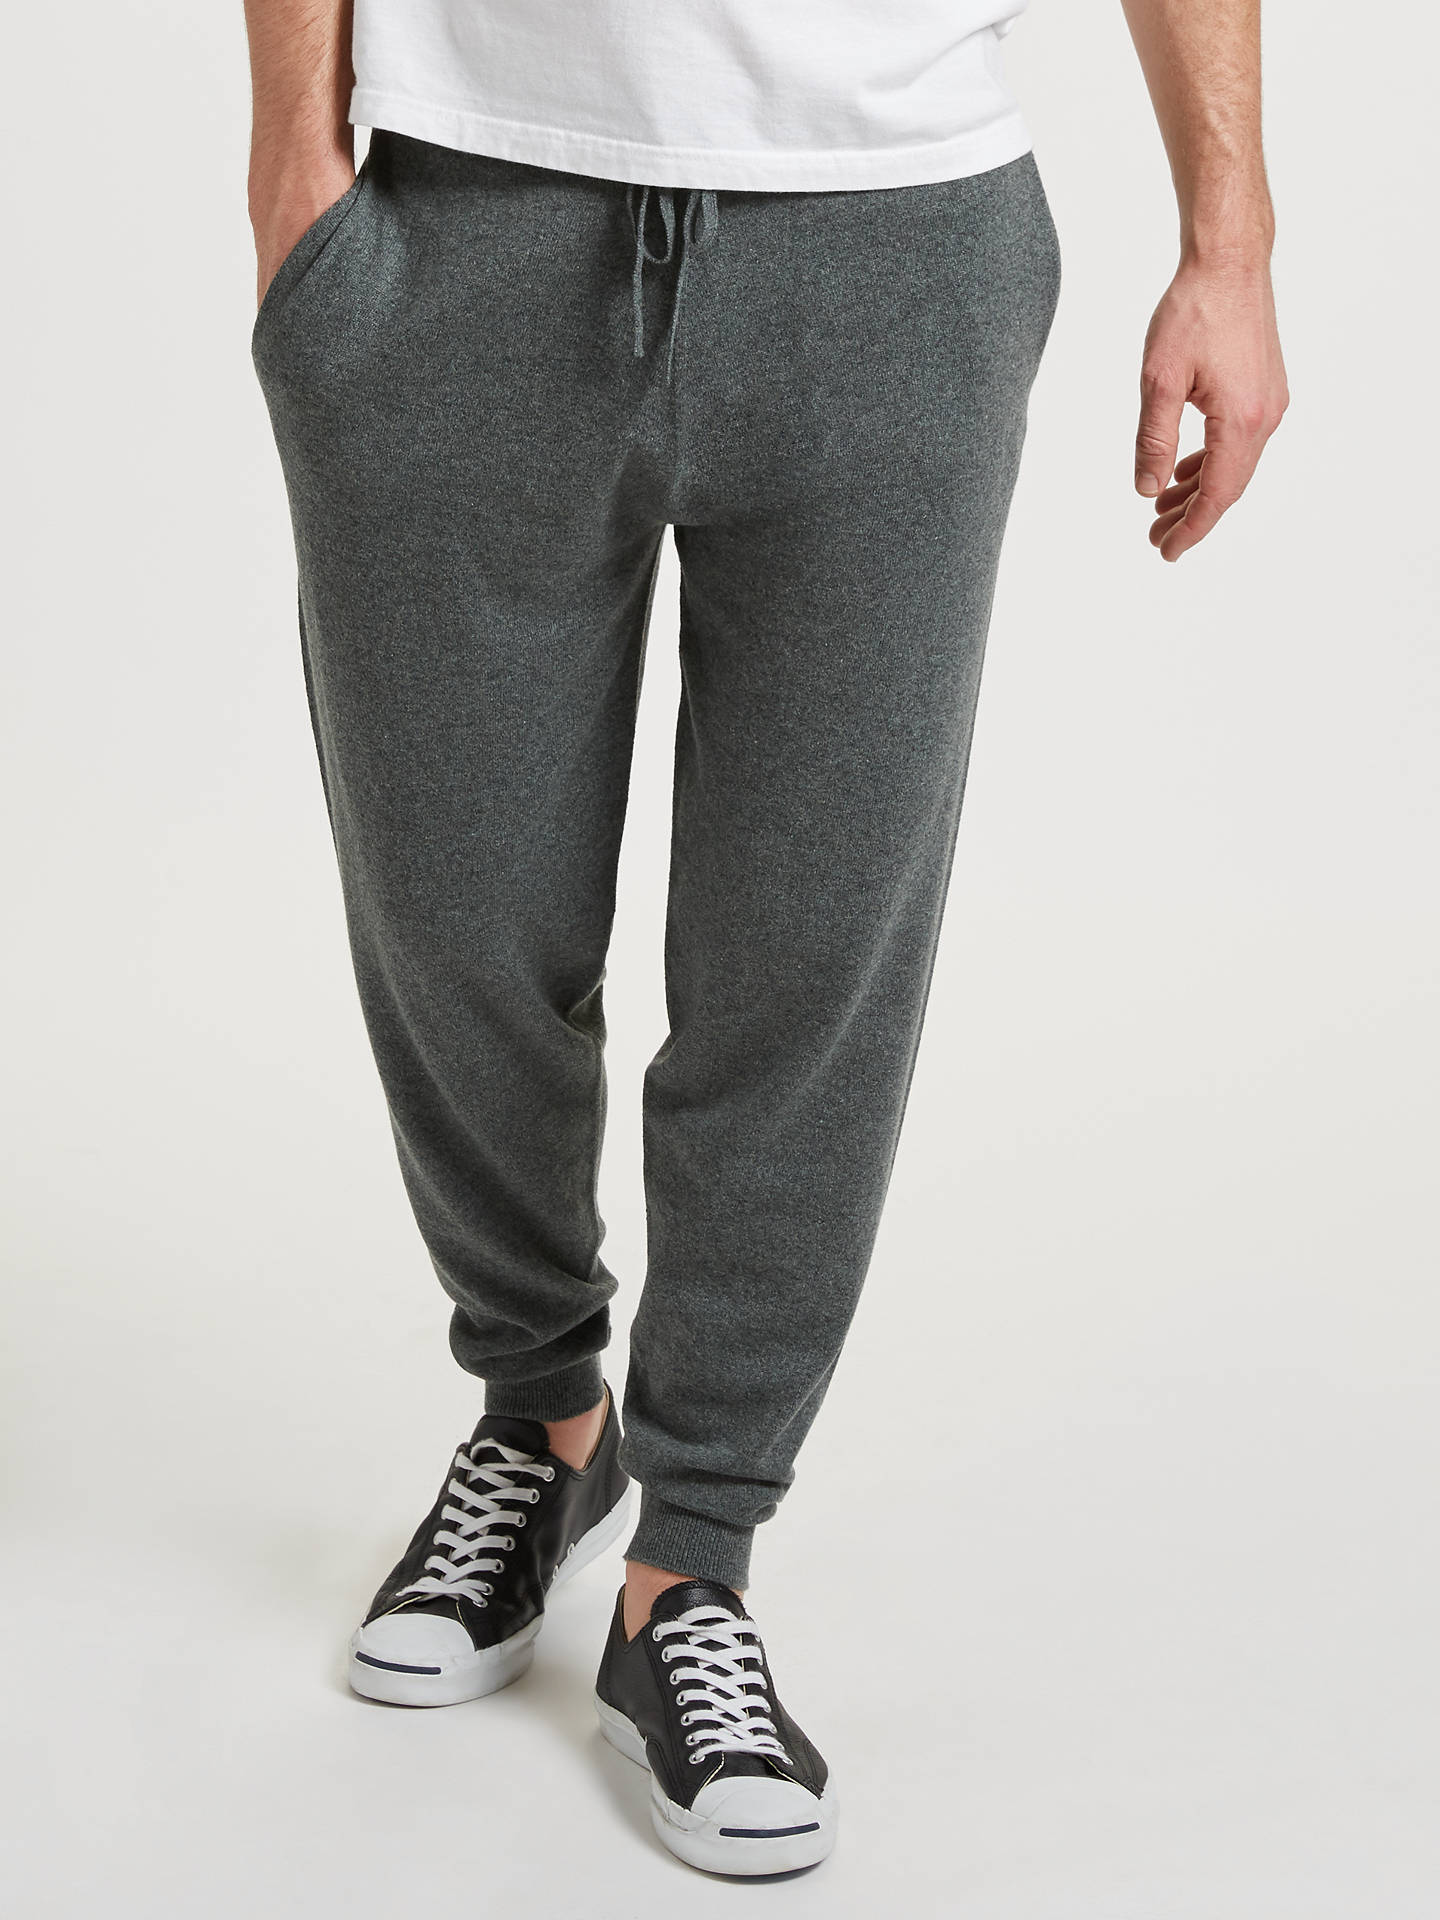 cheap for discount exquisite style search for original John Lewis Cashmere Joggers at John Lewis & Partners